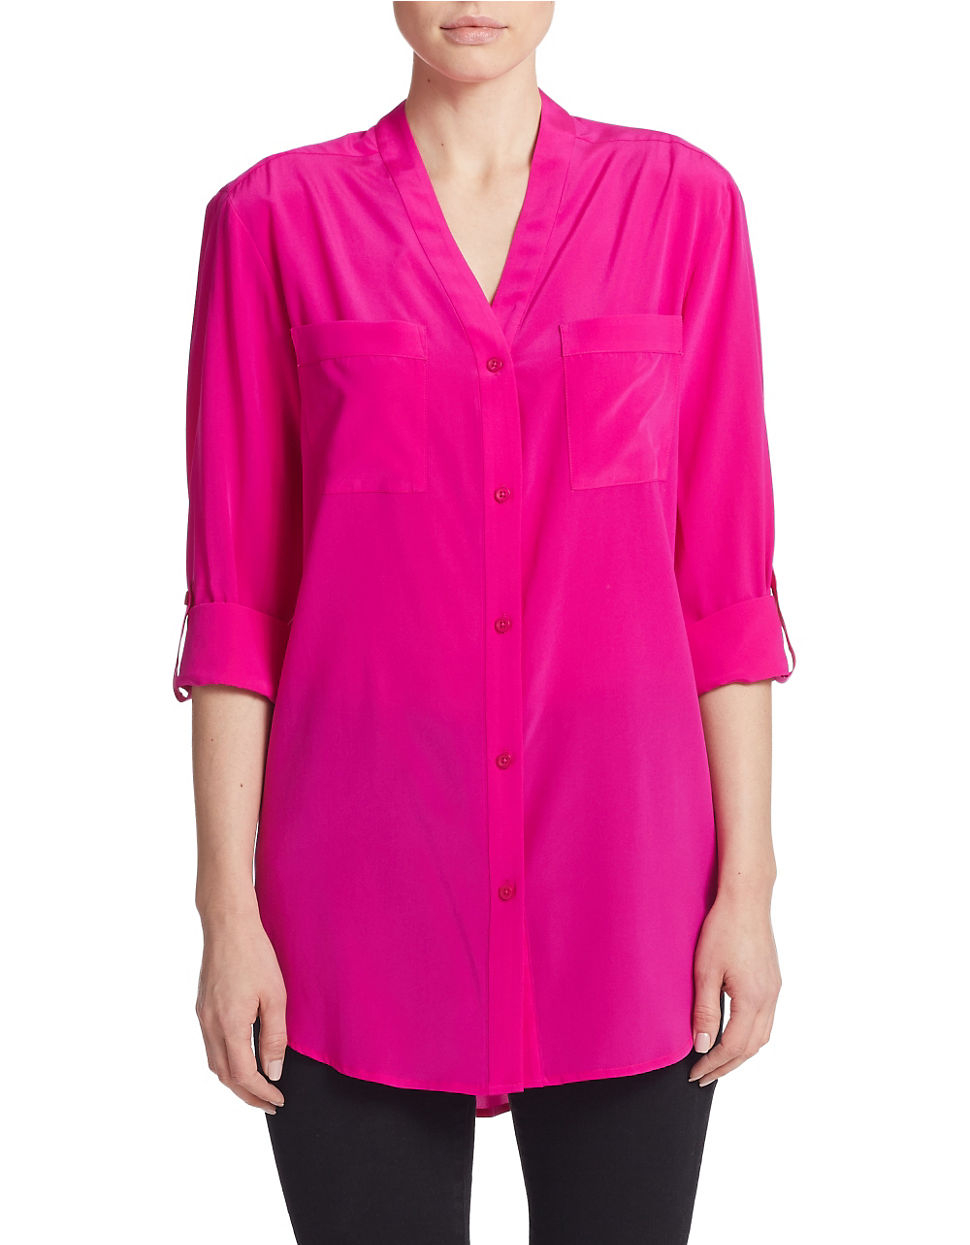 Dkny silk button down blouse in pink lyst for Silk button down shirt